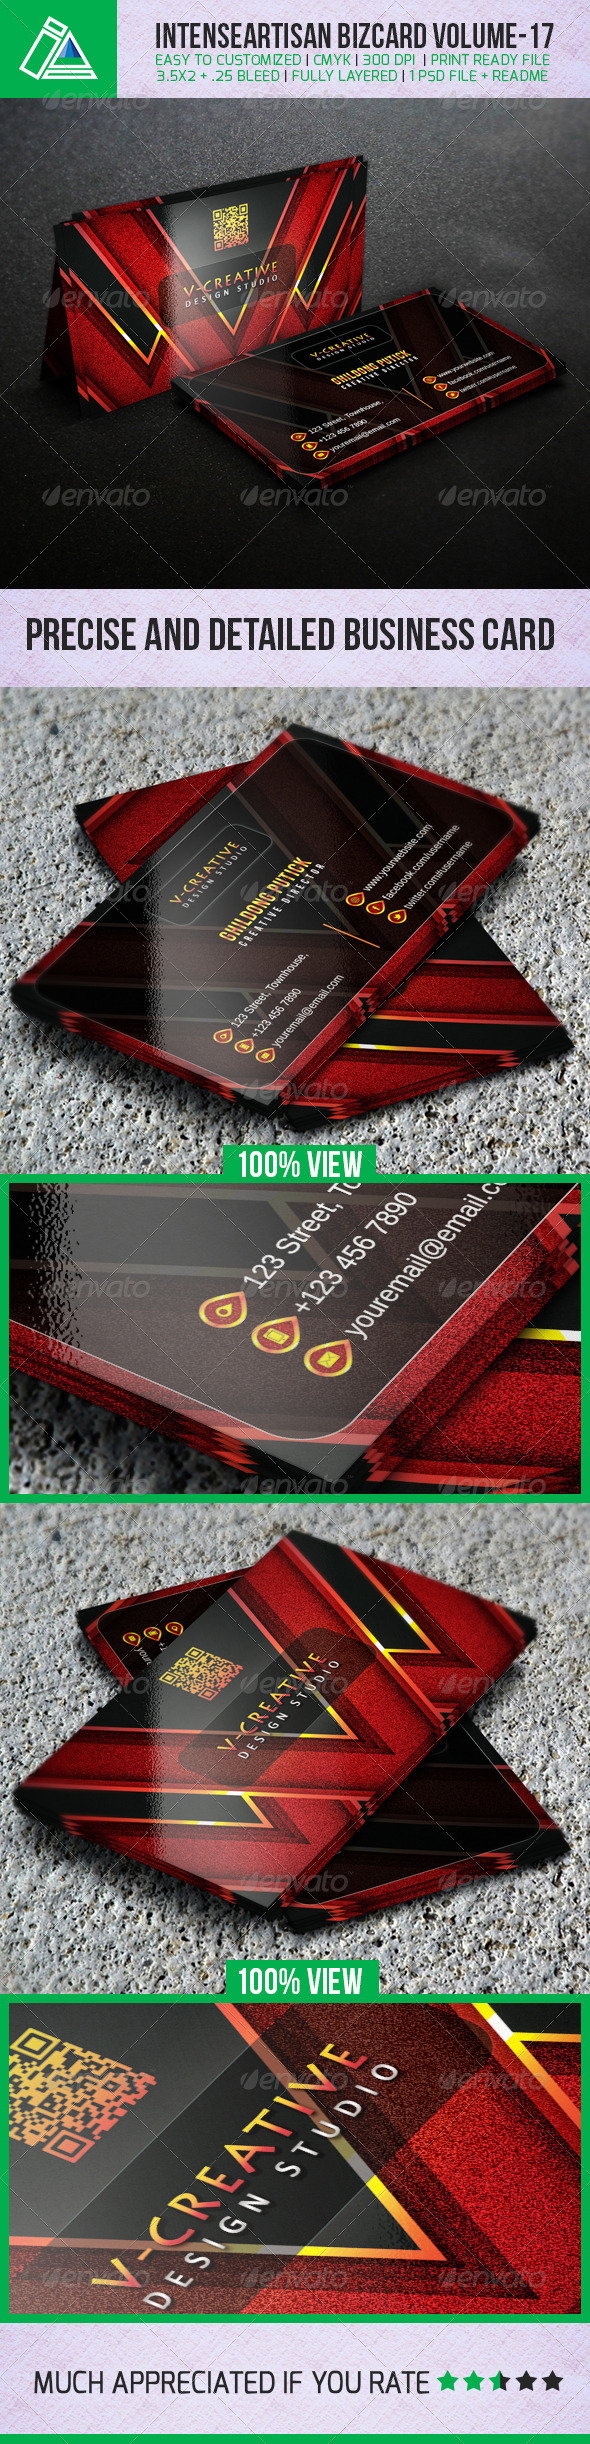 IntenseArtisan Creative Business Card Vol-17 - Creative Business Cards